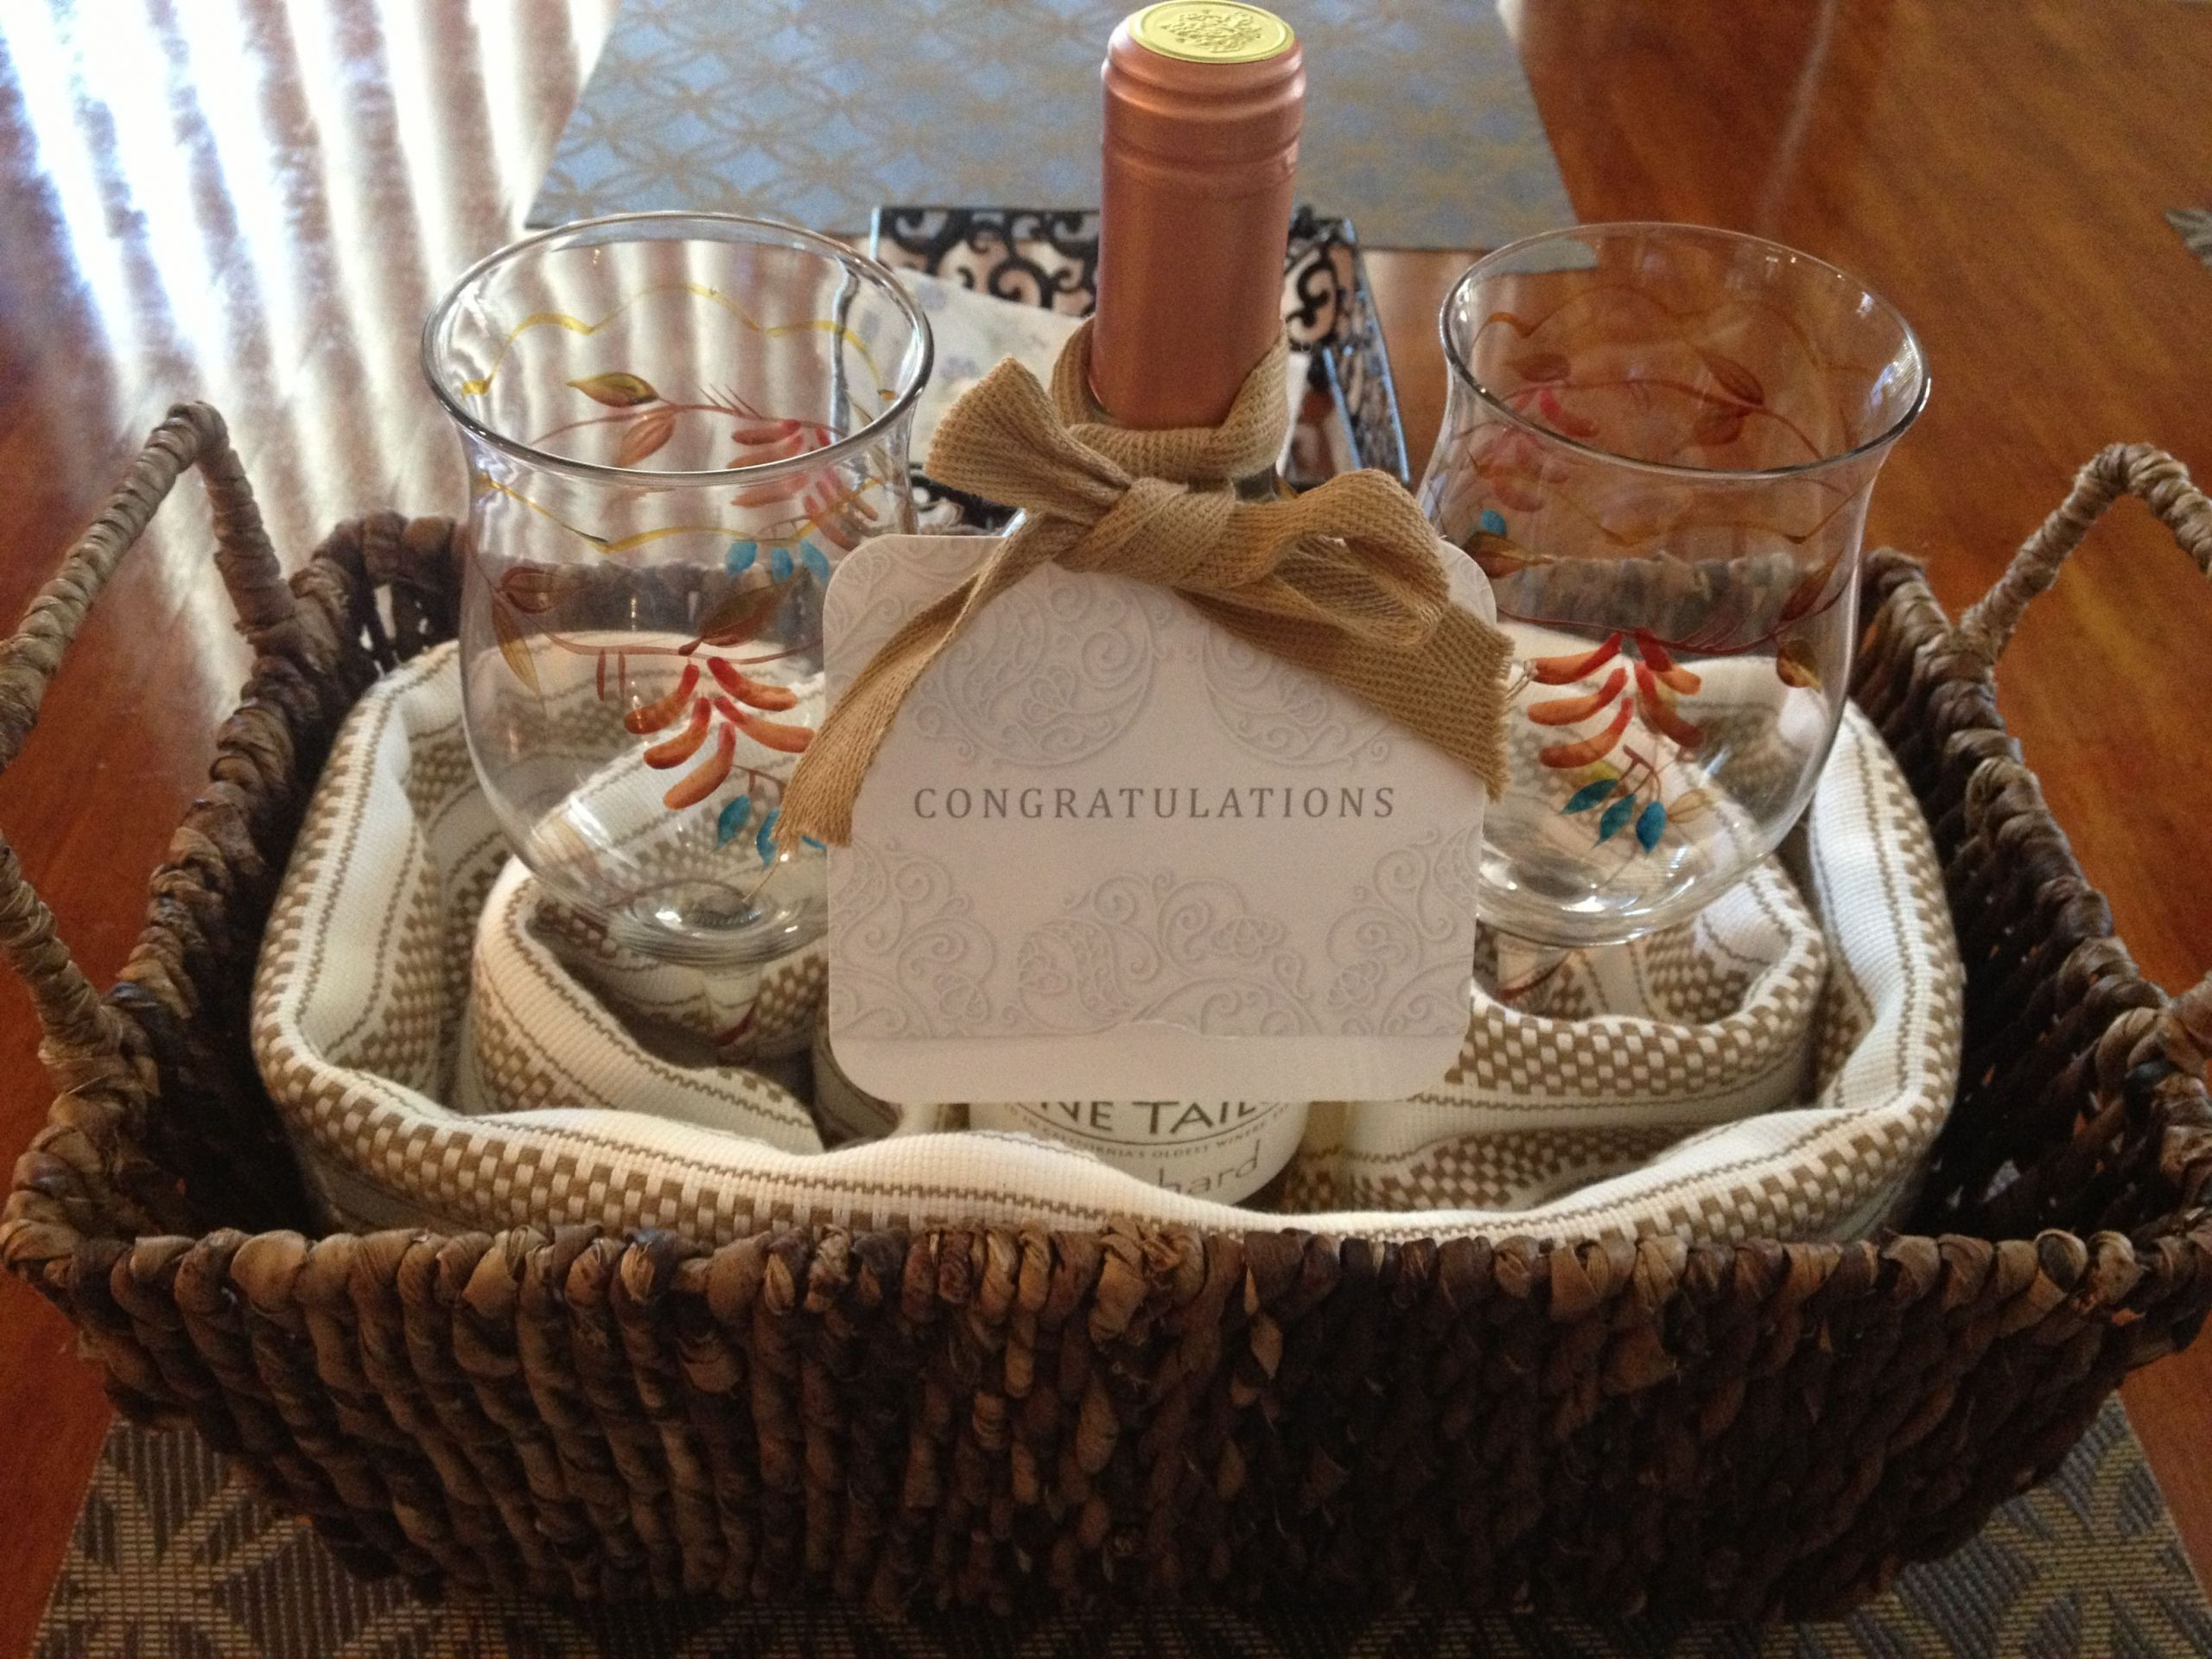 Host Gift Ideas For Couples  Pin on DIY